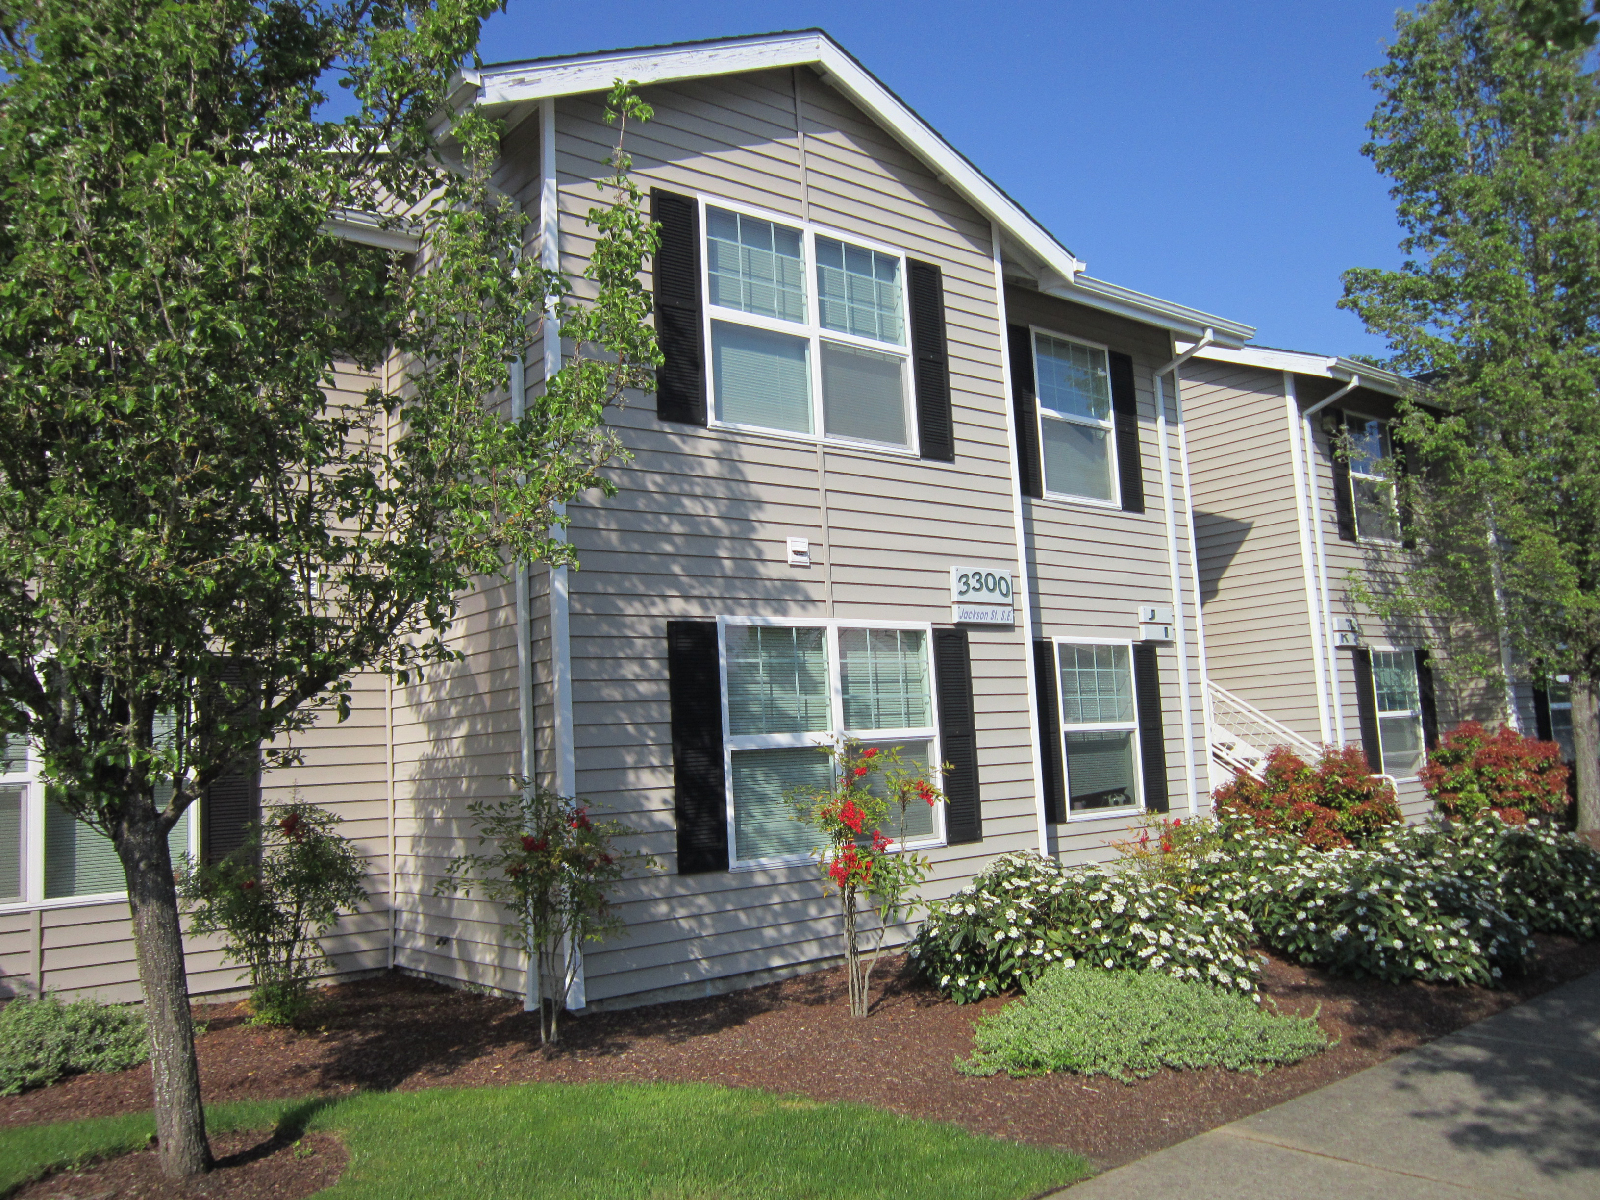 Sold - Sunrise Pointe - Albany, Or.